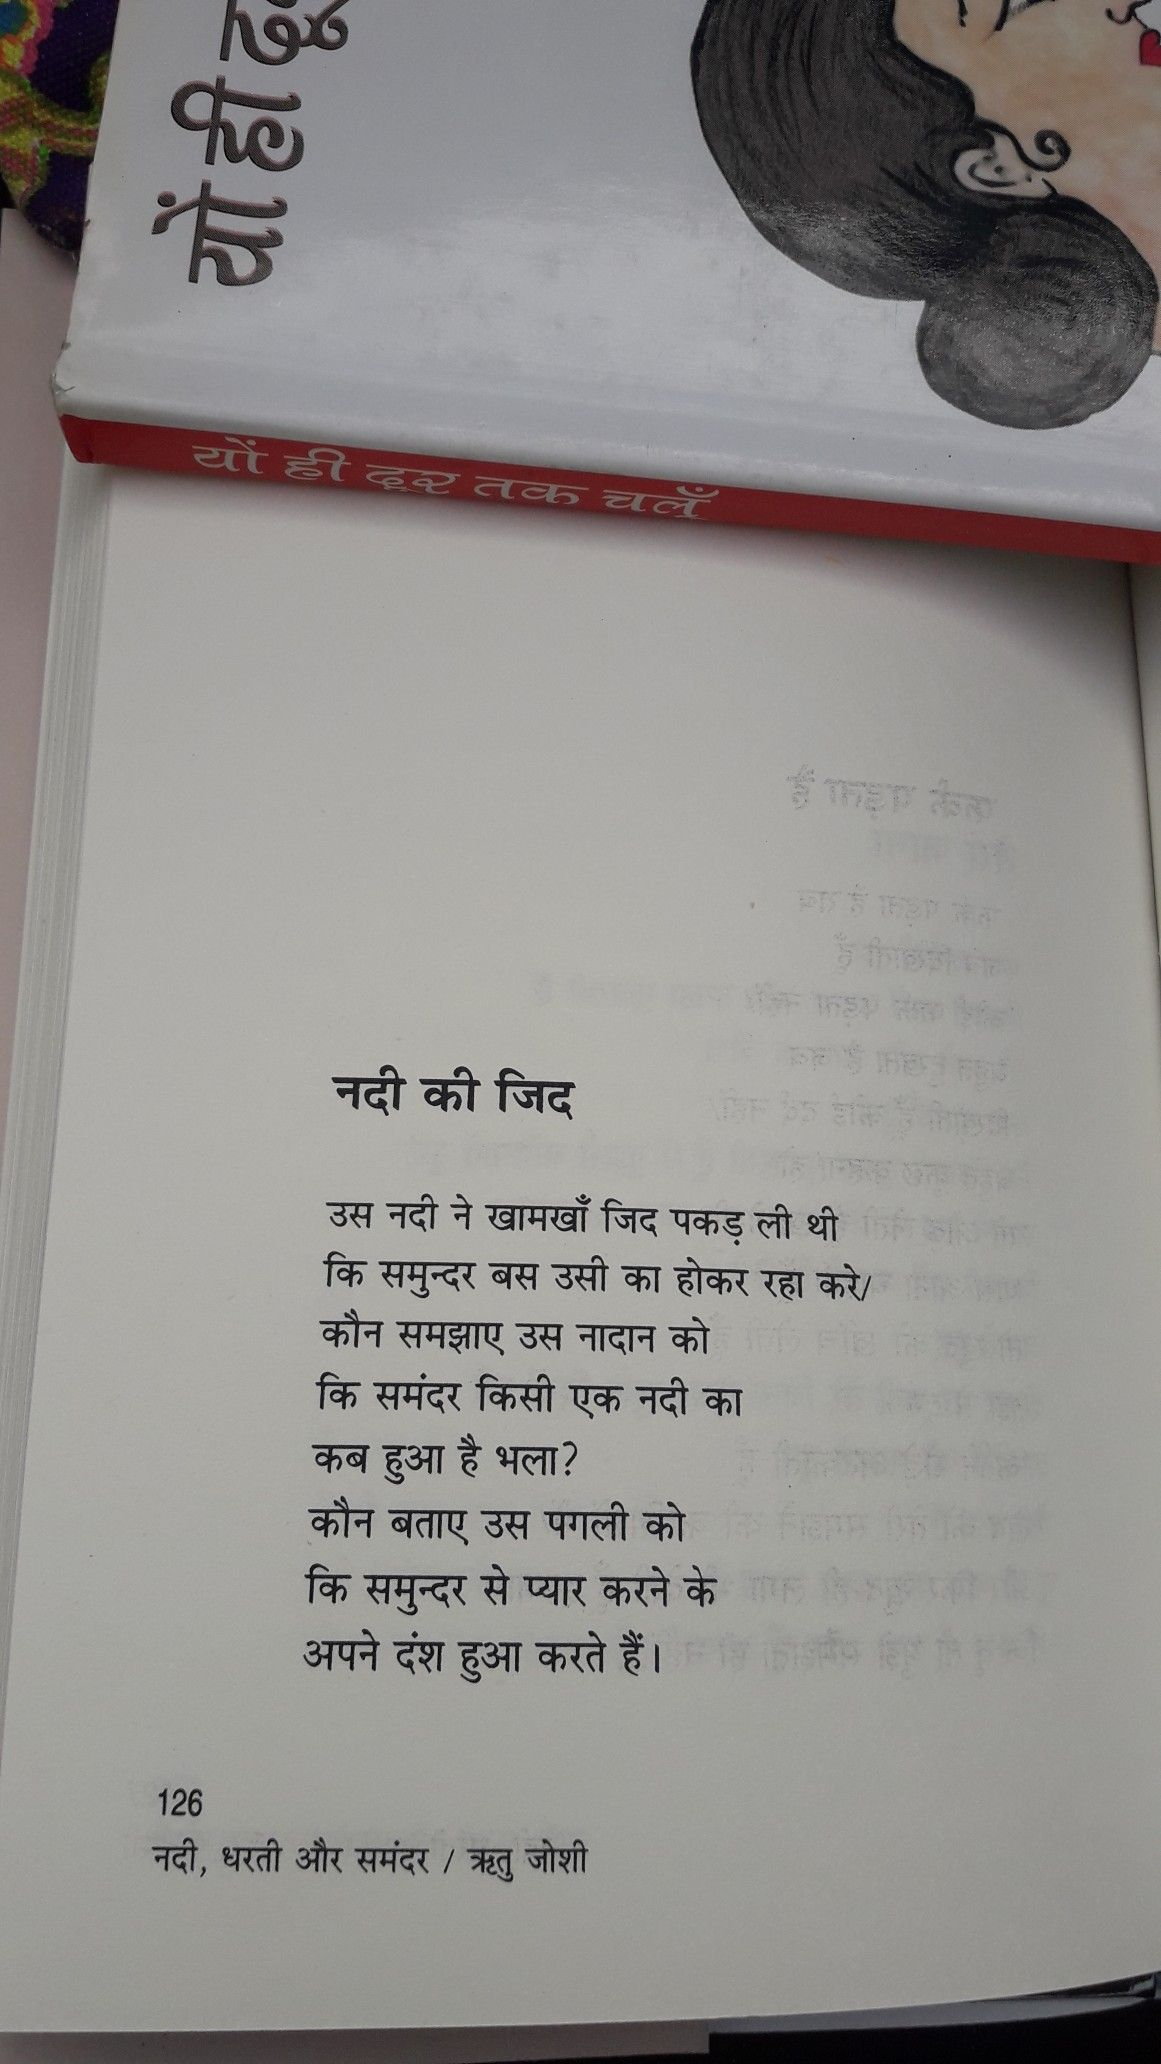 Hindi Poetry Shayari Poem Bookexcrepts Hritu Joshi Love Poems In Hindi Love Poem For Her Friends Quotes Funny